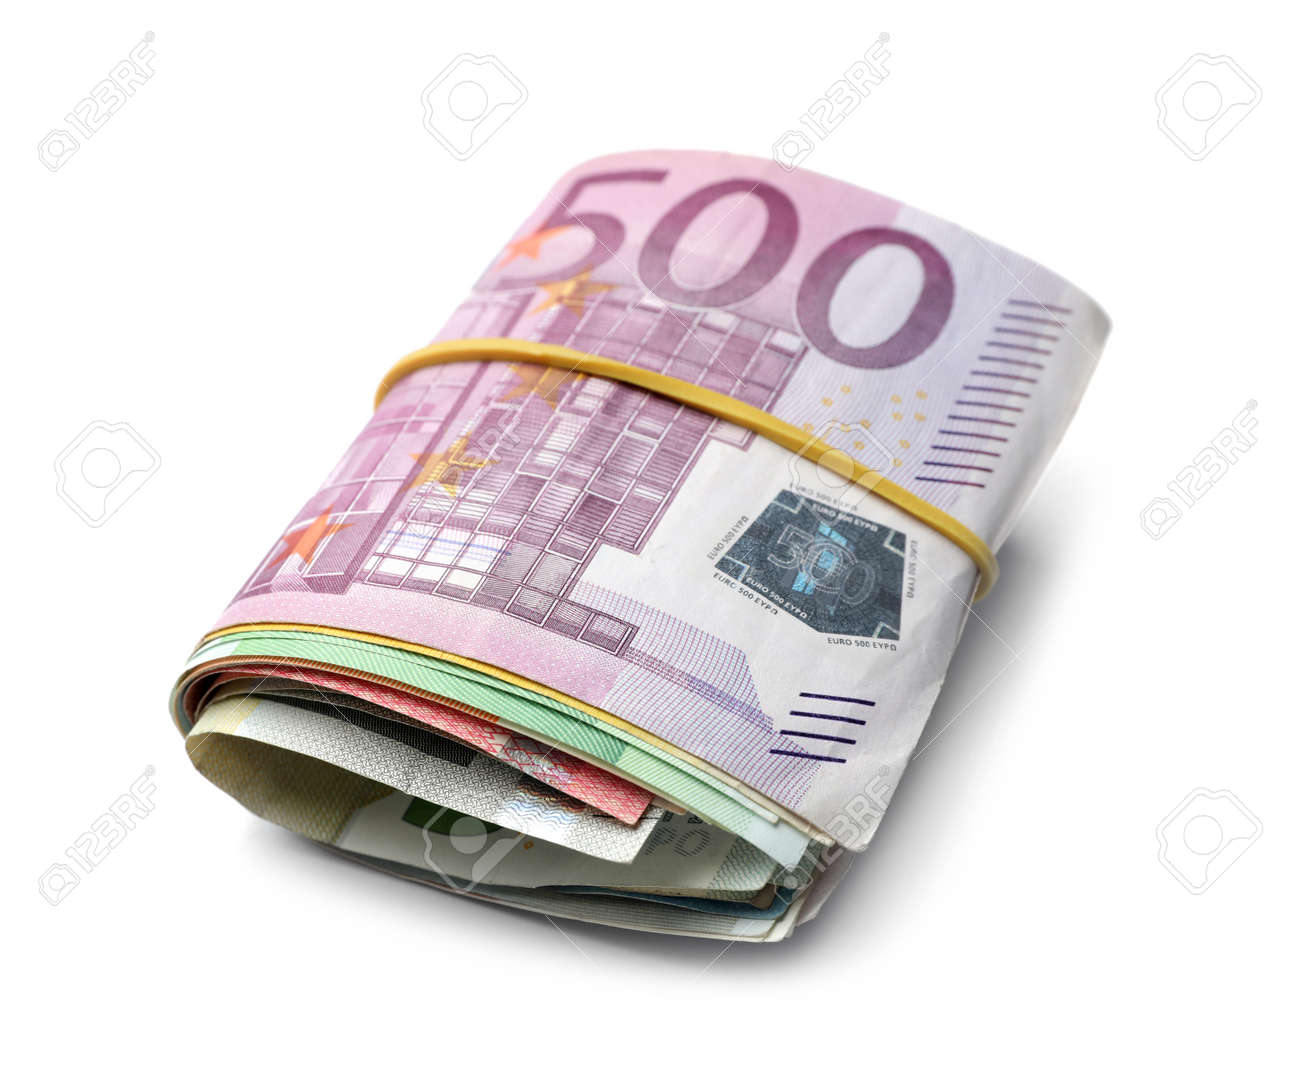 Different Euro banknotes with rubber band on white background - 155444877